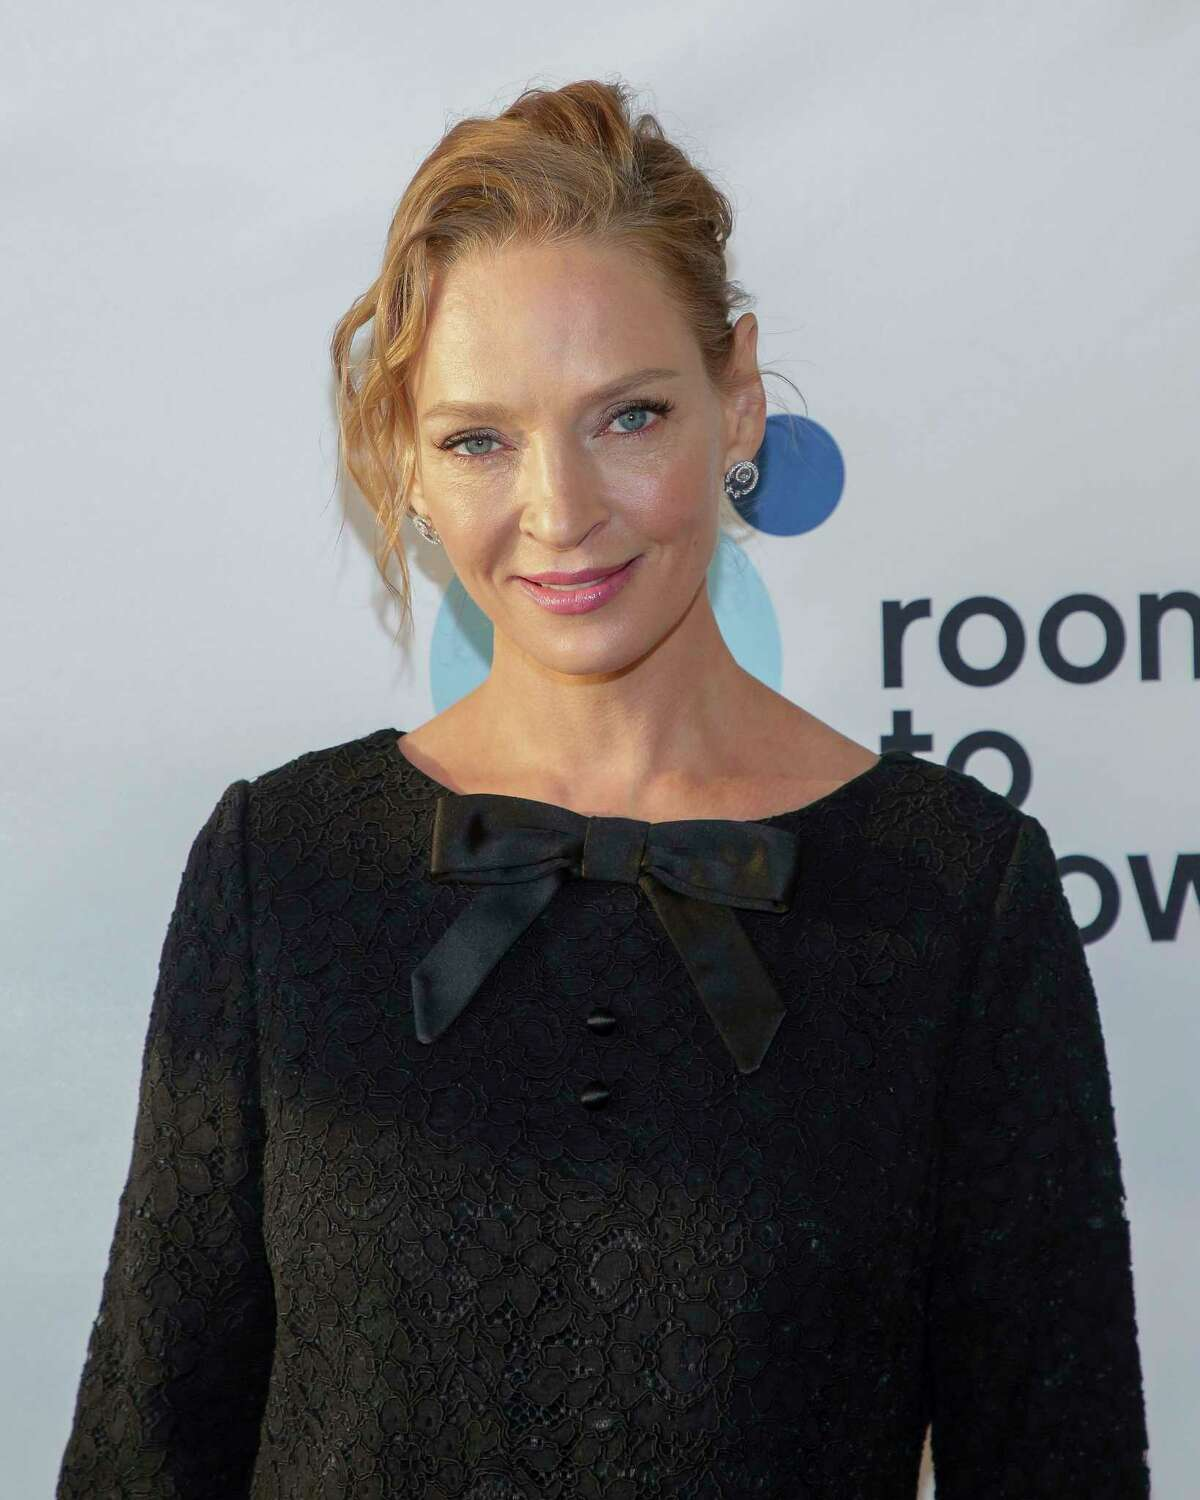 Actress Uma Thurman attends the 20th annual Room to Grow Spring benefit at The Lighthouse at Chelsea Piers on Wednesday, April 11, 2018, in New York. (Photo by Brent N. Clarke/Invision/AP)